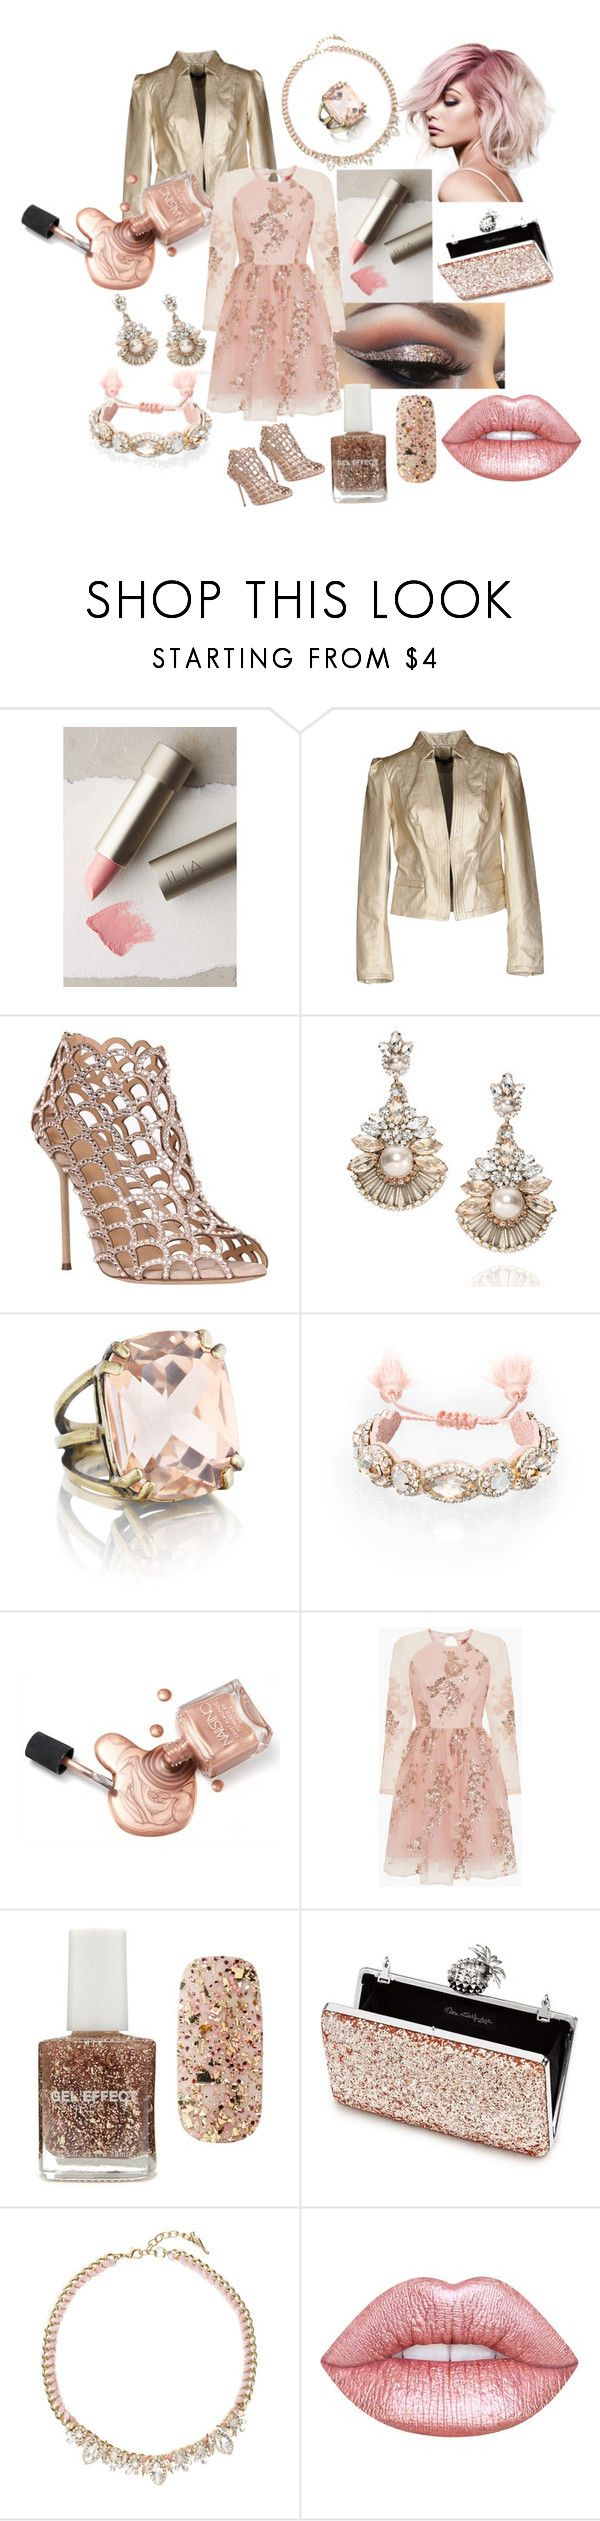 """Spring Bling #1 by Accentuated Gems"" by accentuated-gems on Polyvore featuring Ilia, Morgan De Toi, Sergio Rossi, Chloe + Isabel, Chi Chi, Forever 21, Miss Selfridge and Lime Crime"